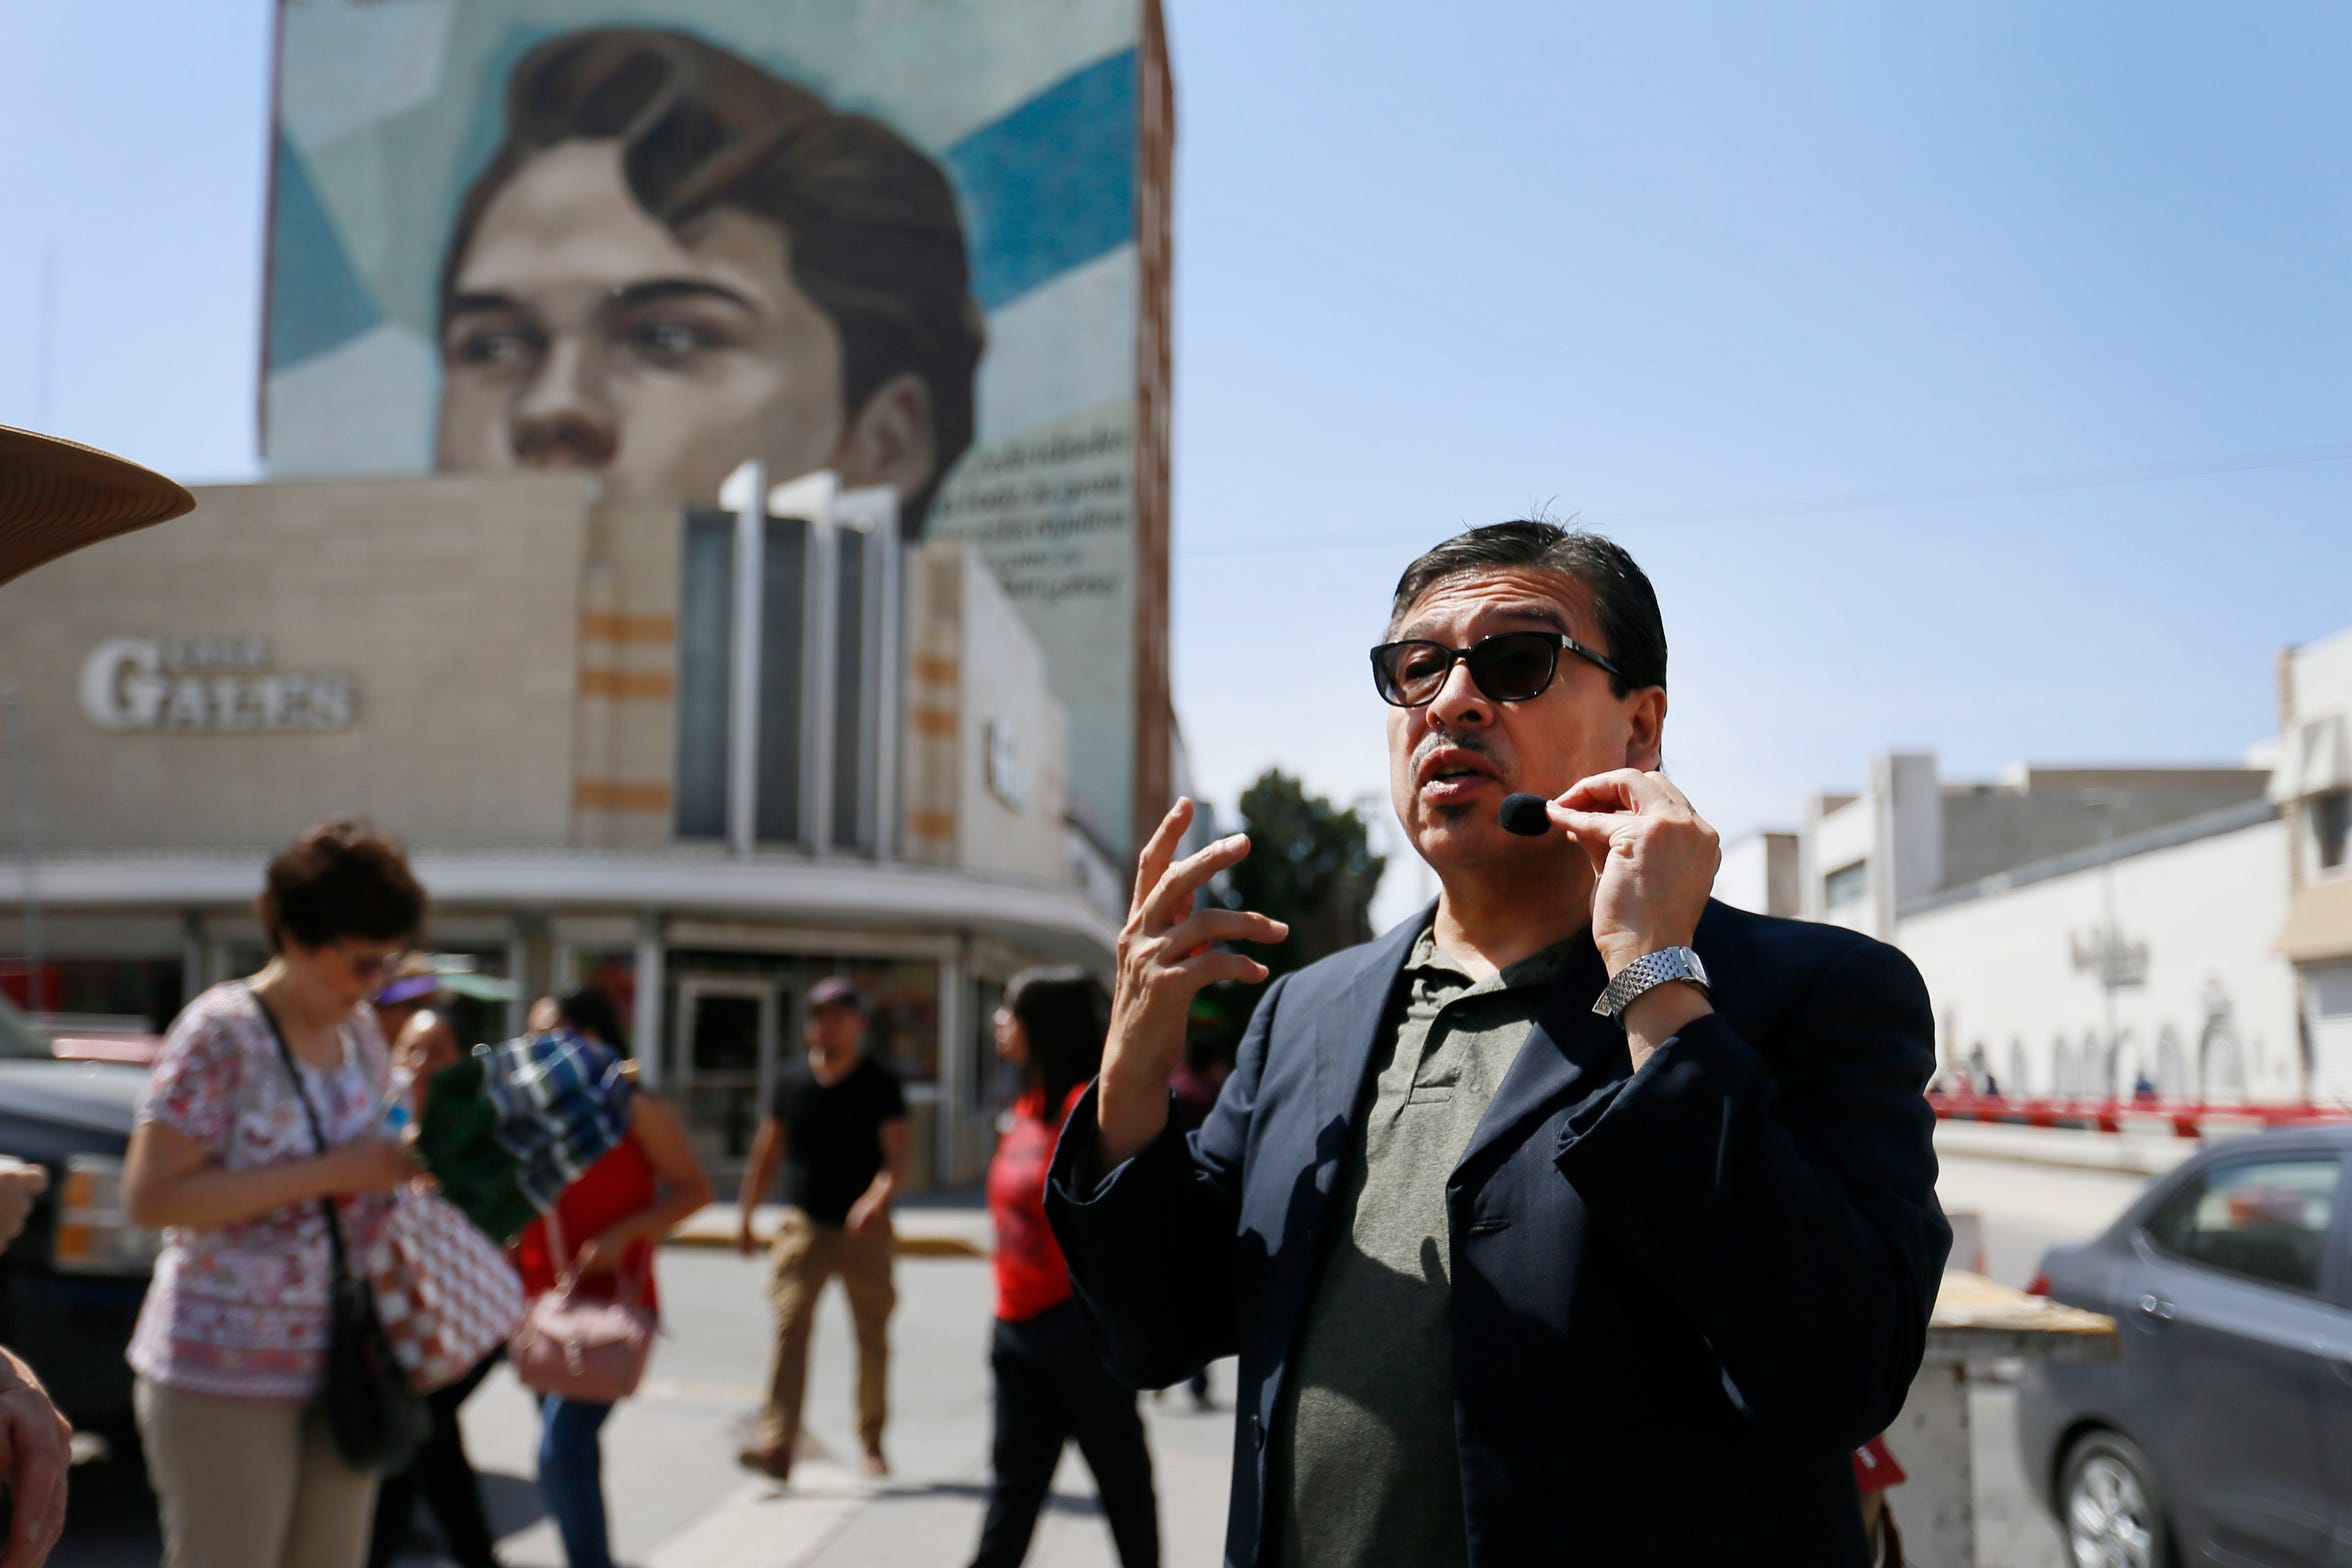 Thomas Cueva, UACJ professor of history, talks about the mural of Juan Gabriel during the Juárez historic walking tour lead by El Paso's first lady Adair Margo Thursday, May 16, in Juárez.